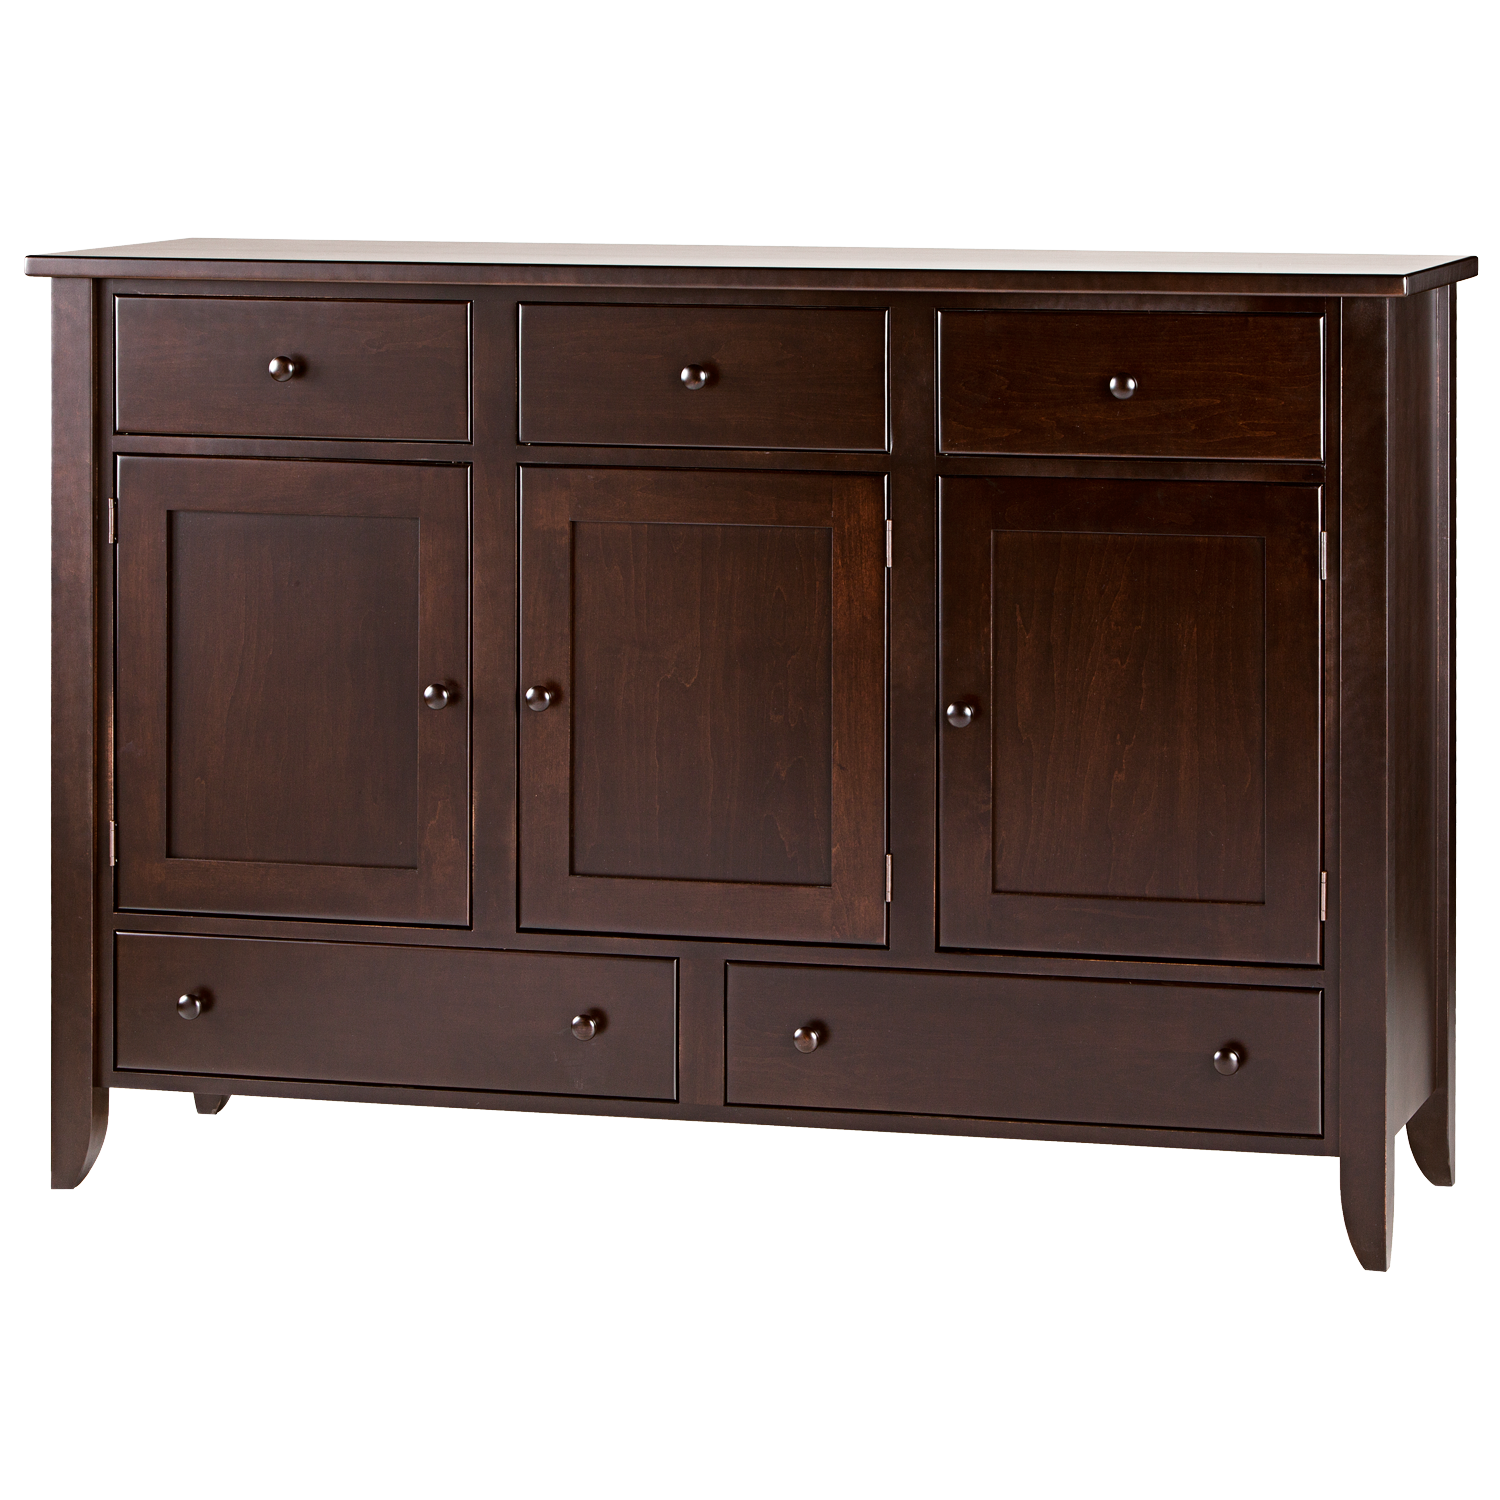 Us Furniture Inc: Tapered Leg 5 Drawer 3 Door Dining Chest